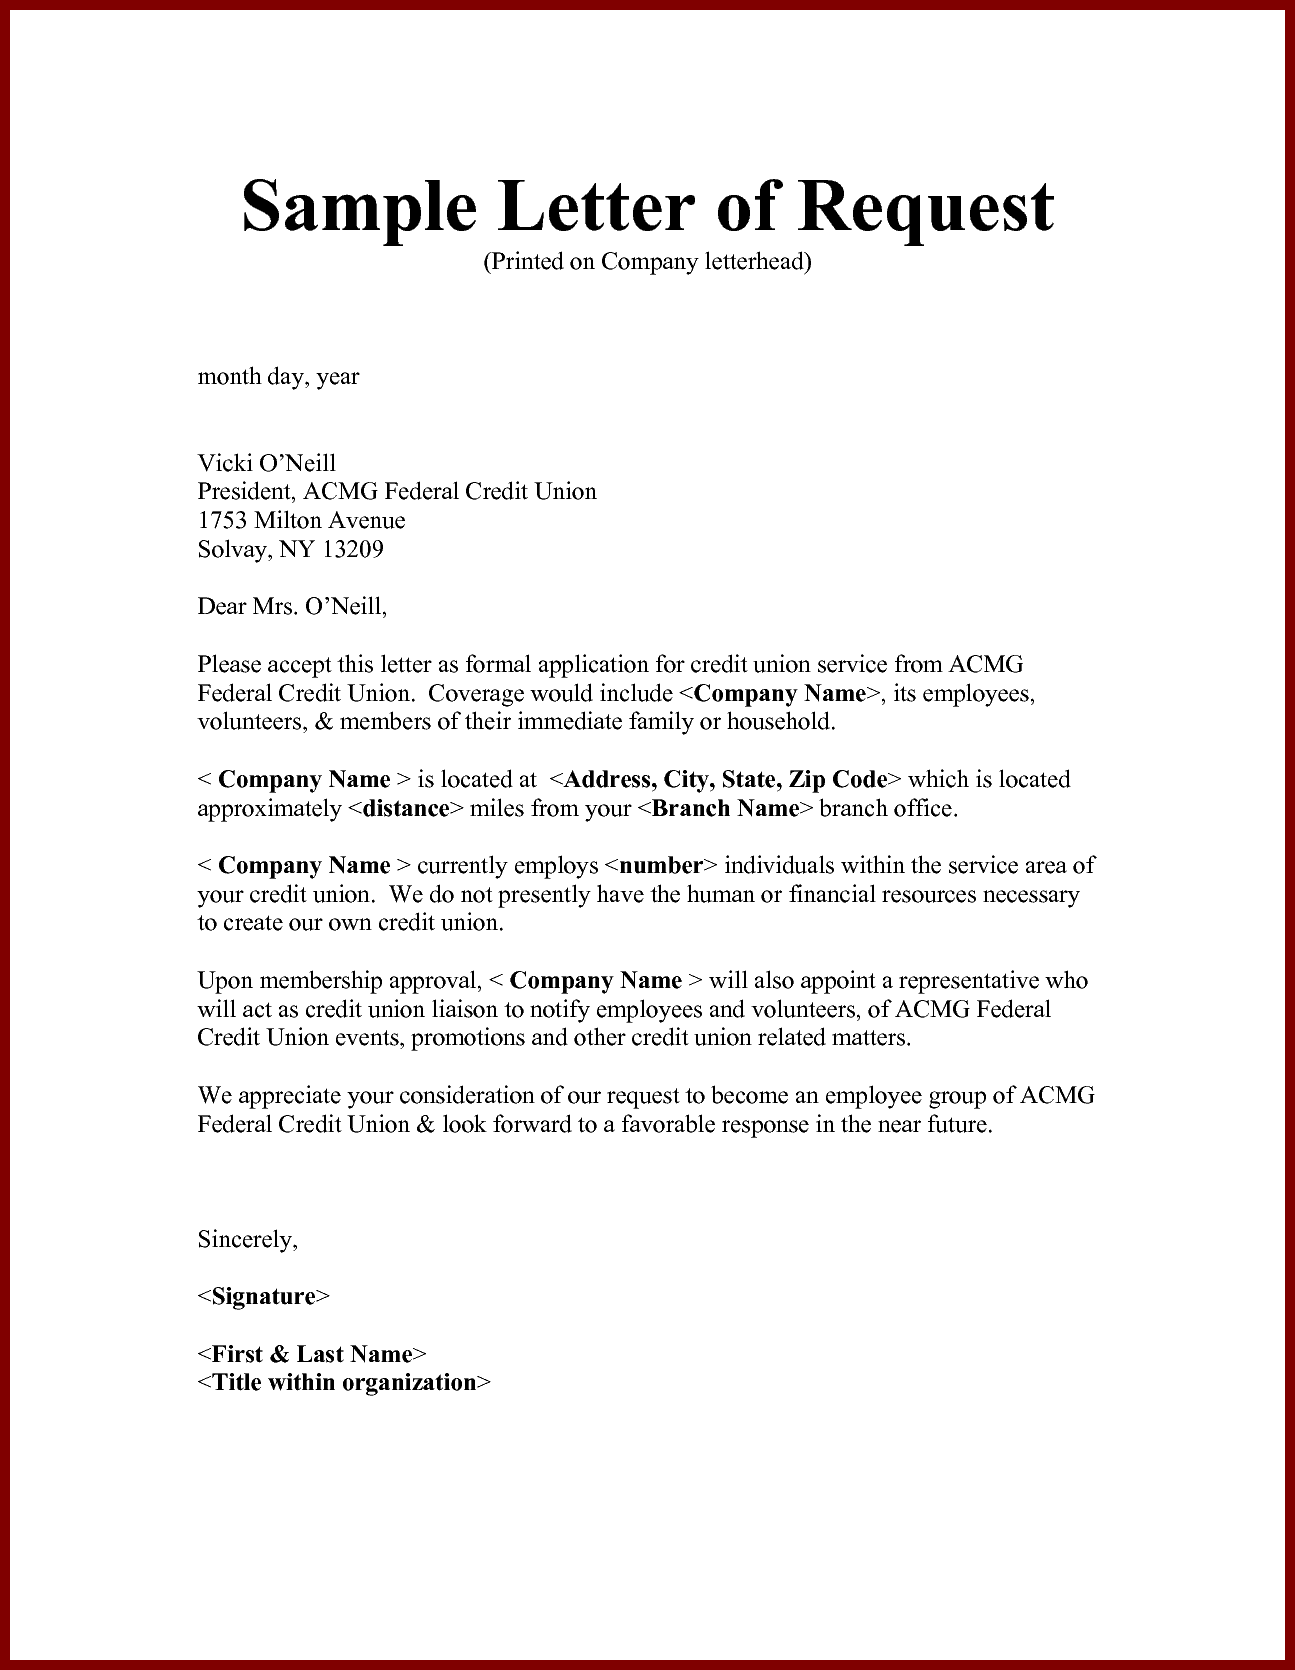 Application letter format for maternity leave college principal application letter format for maternity leave college principal spiritdancerdesigns Image collections